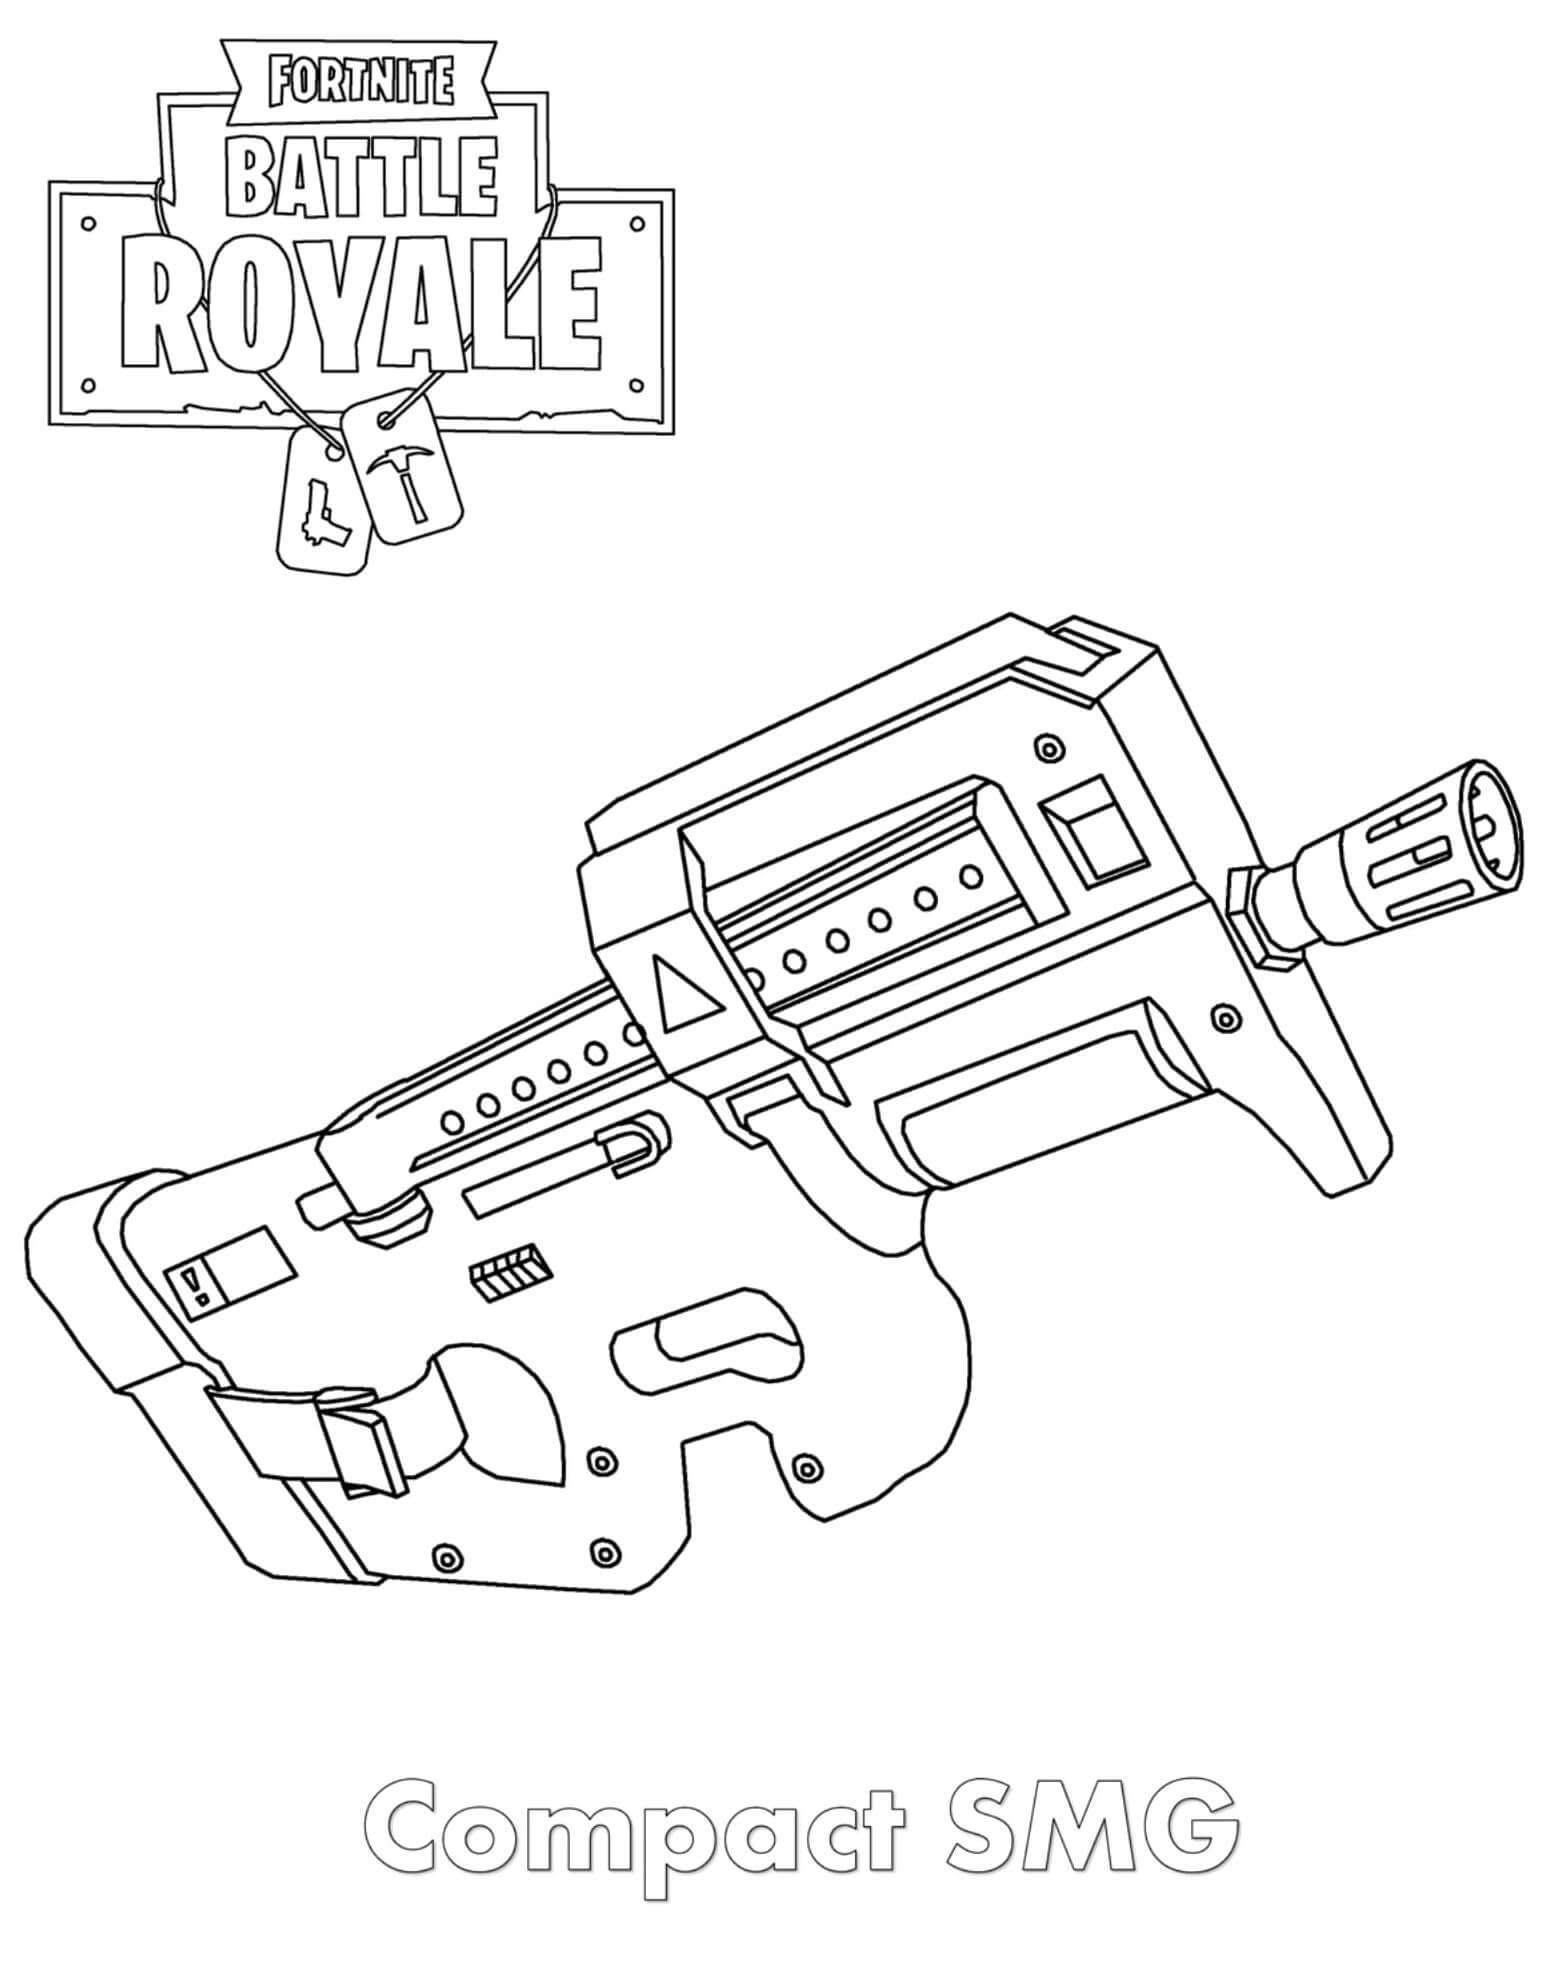 Free Easy Fortnite Skin Coloring Pages SMG Drawings printable